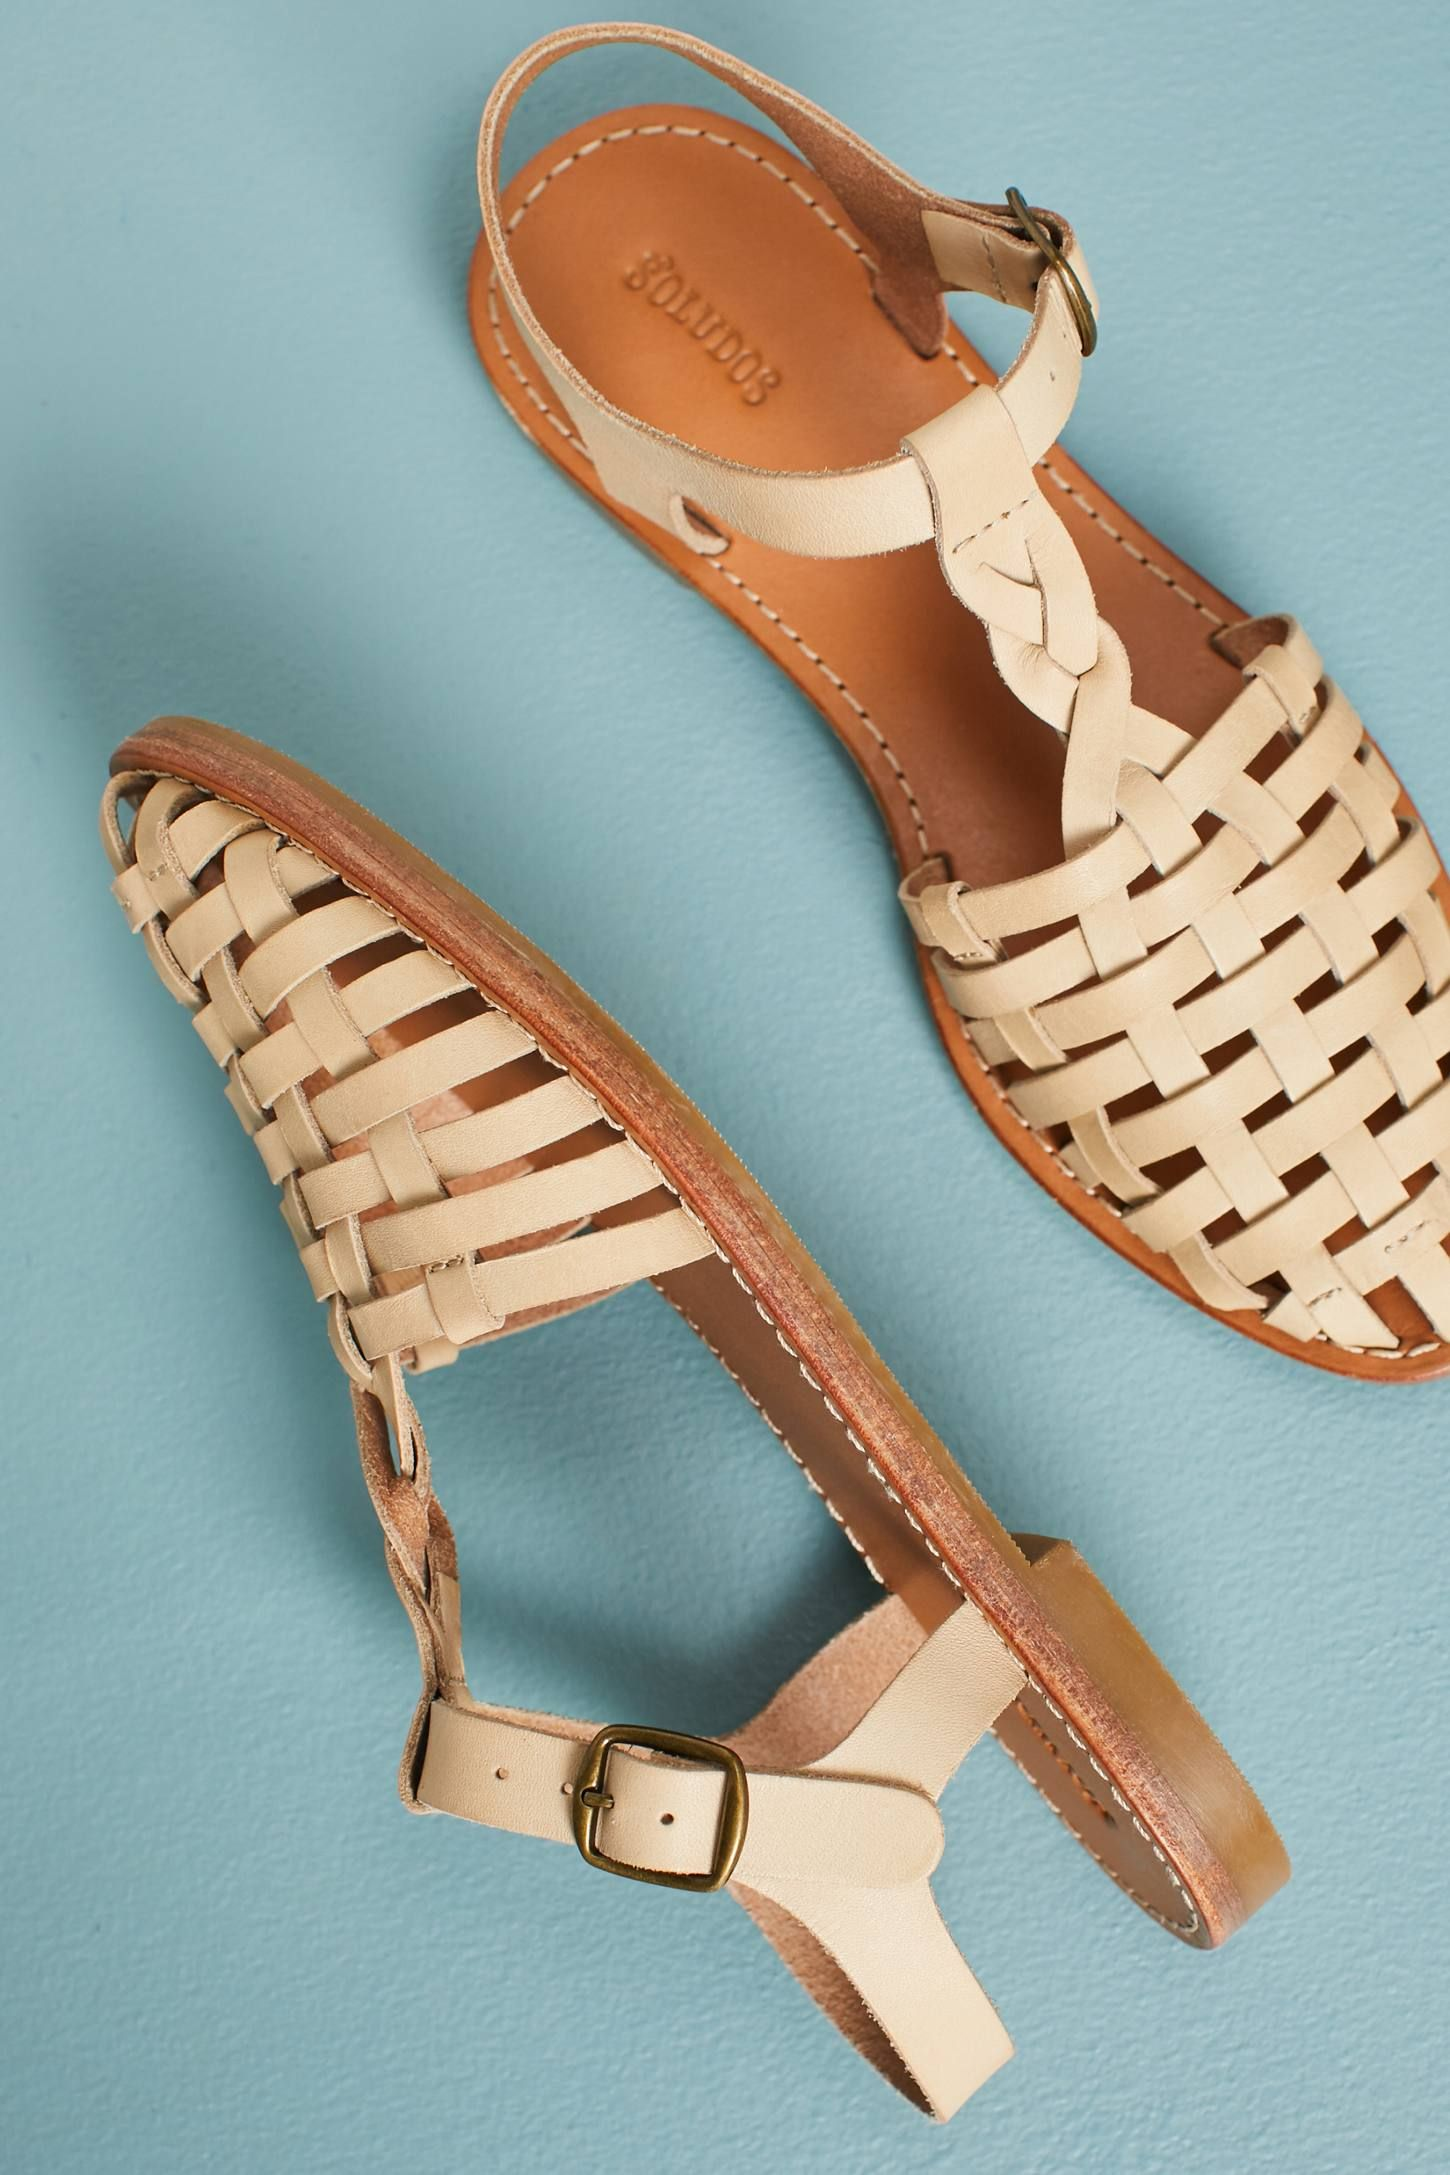 0c3ba3a44 Shop the Soludos Woven Fisherman Sandals and more Anthropologie at  Anthropologie today. Read customer reviews